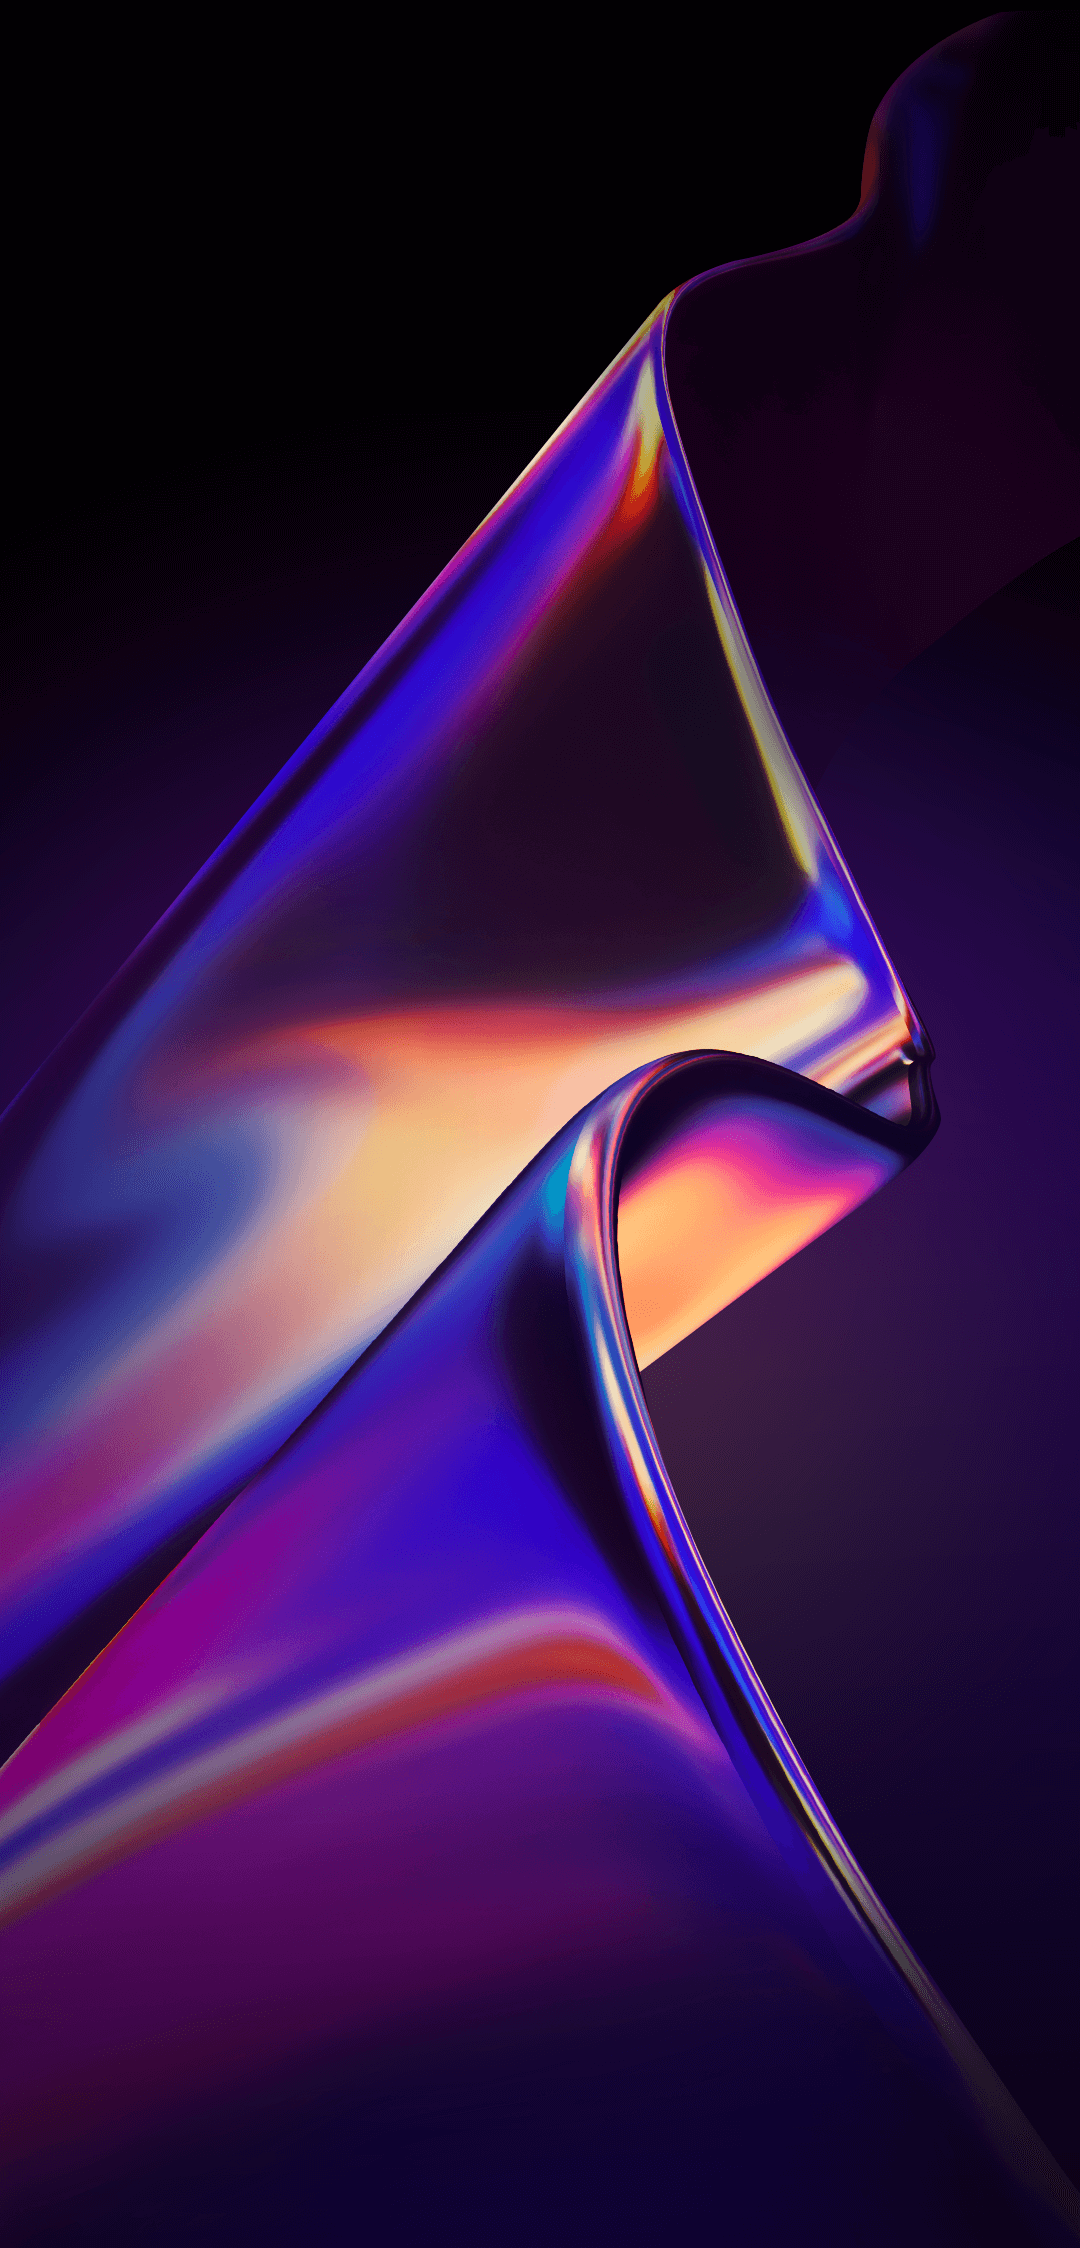 Download Oppo Reno 2 Official Wallpaper Here Full Hd Resolution 1080 X 2400 Pixel Backgrounds Phone Wallpapers Hd Phone Wallpapers Iphone Background Wallpaper